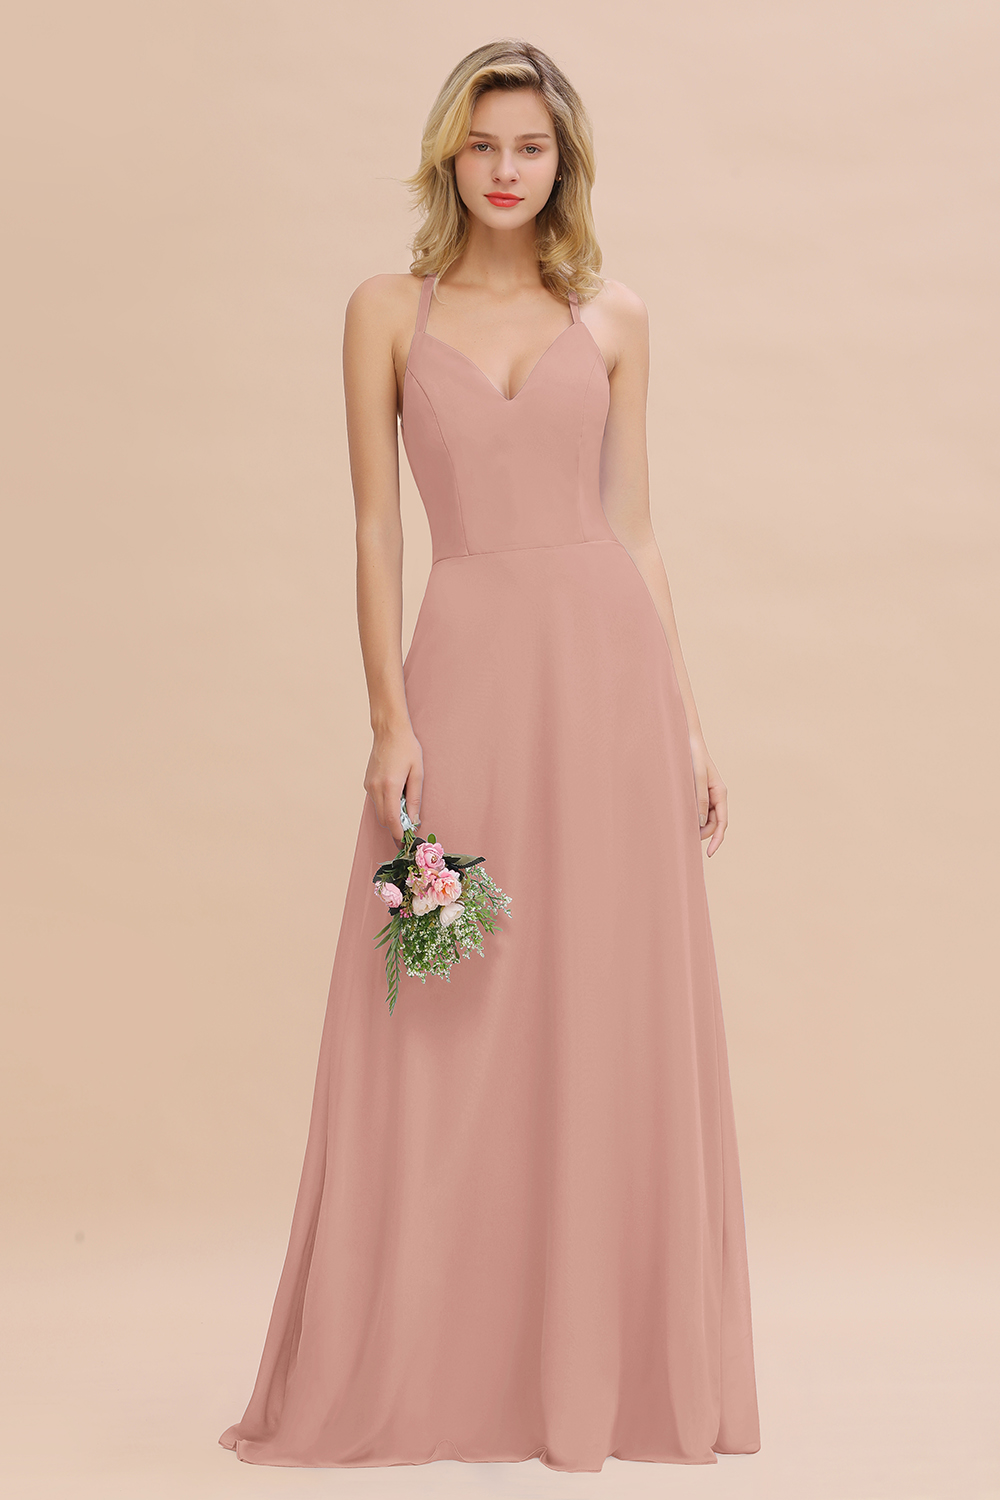 BMbridal Modest Halter V-Neck Sleeveless Long Bridesmaid Dresses Online